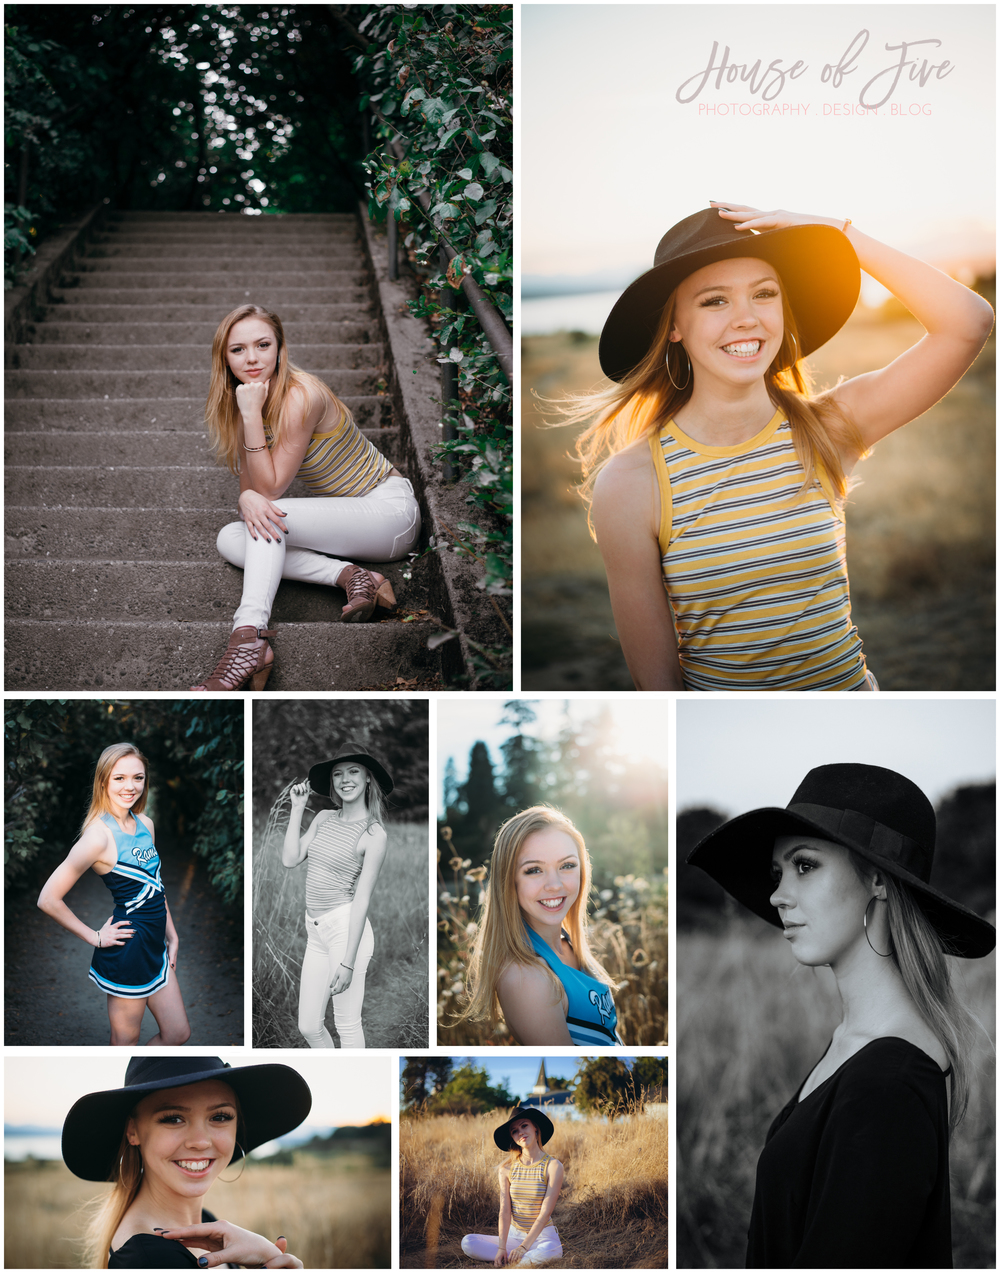 House of Five Senior Photos - Discovery Park, Seattle WA